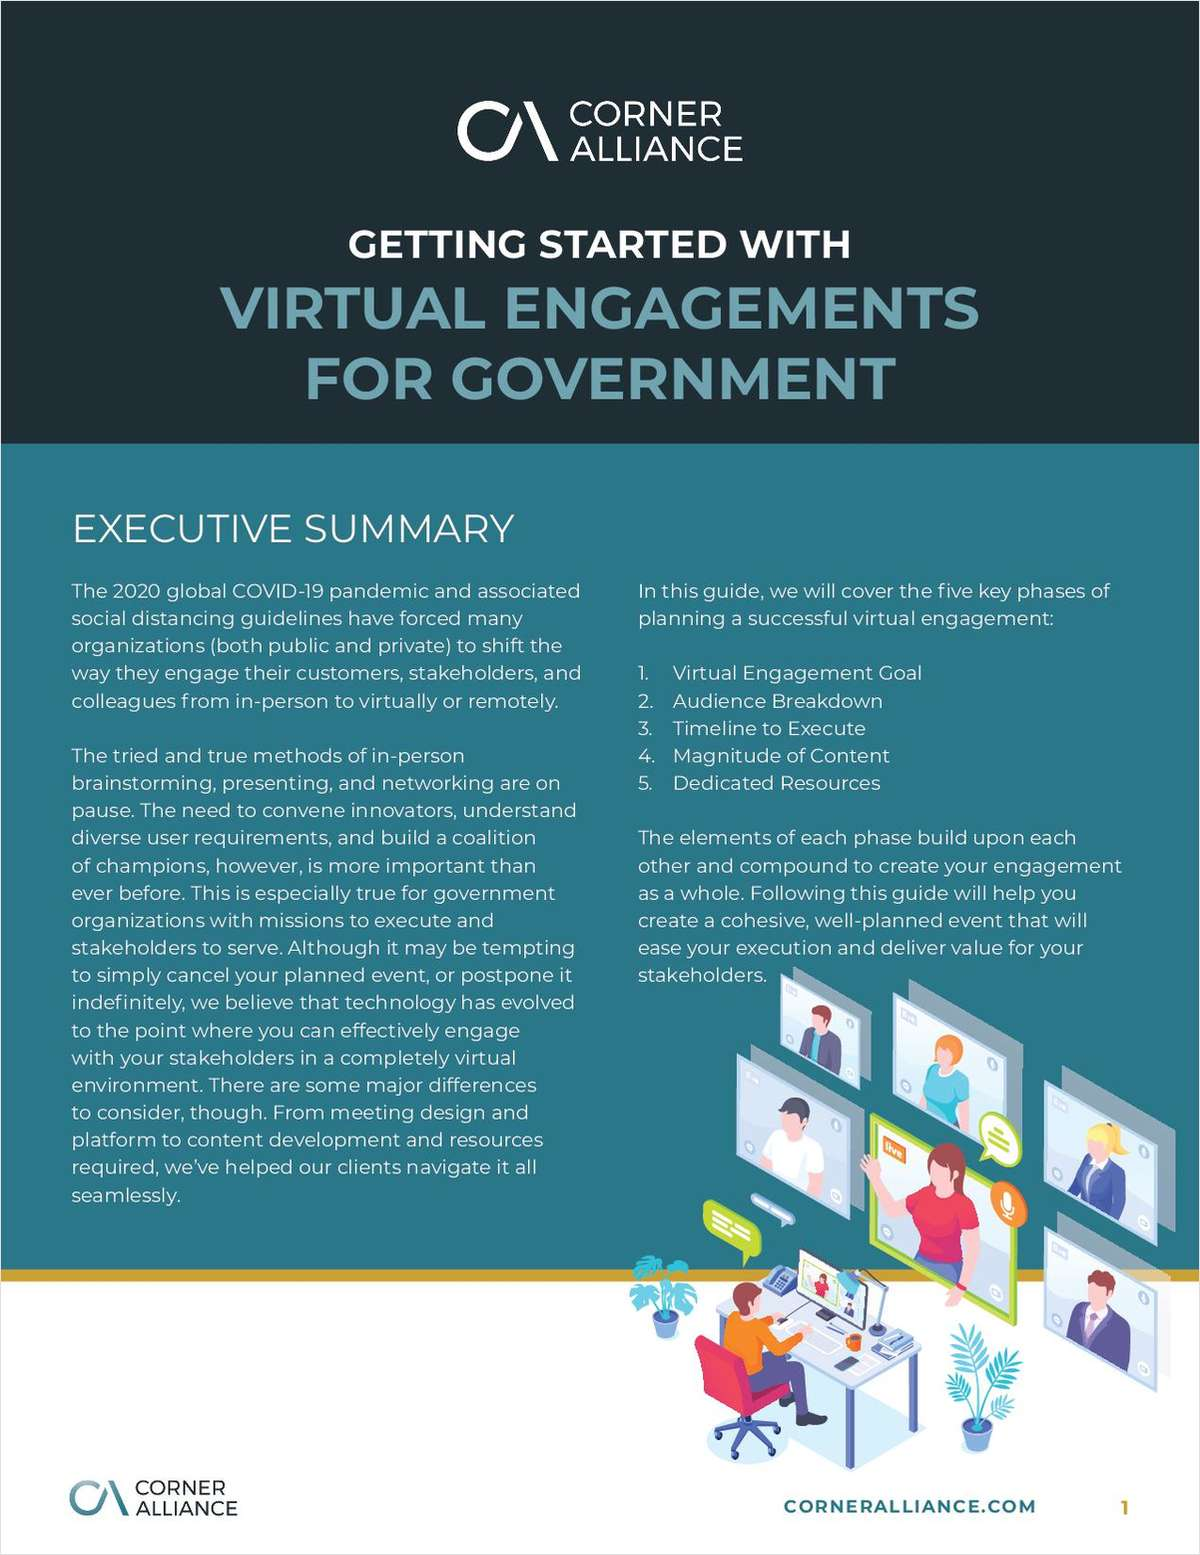 Getting Started With Virtual Engagements for Government